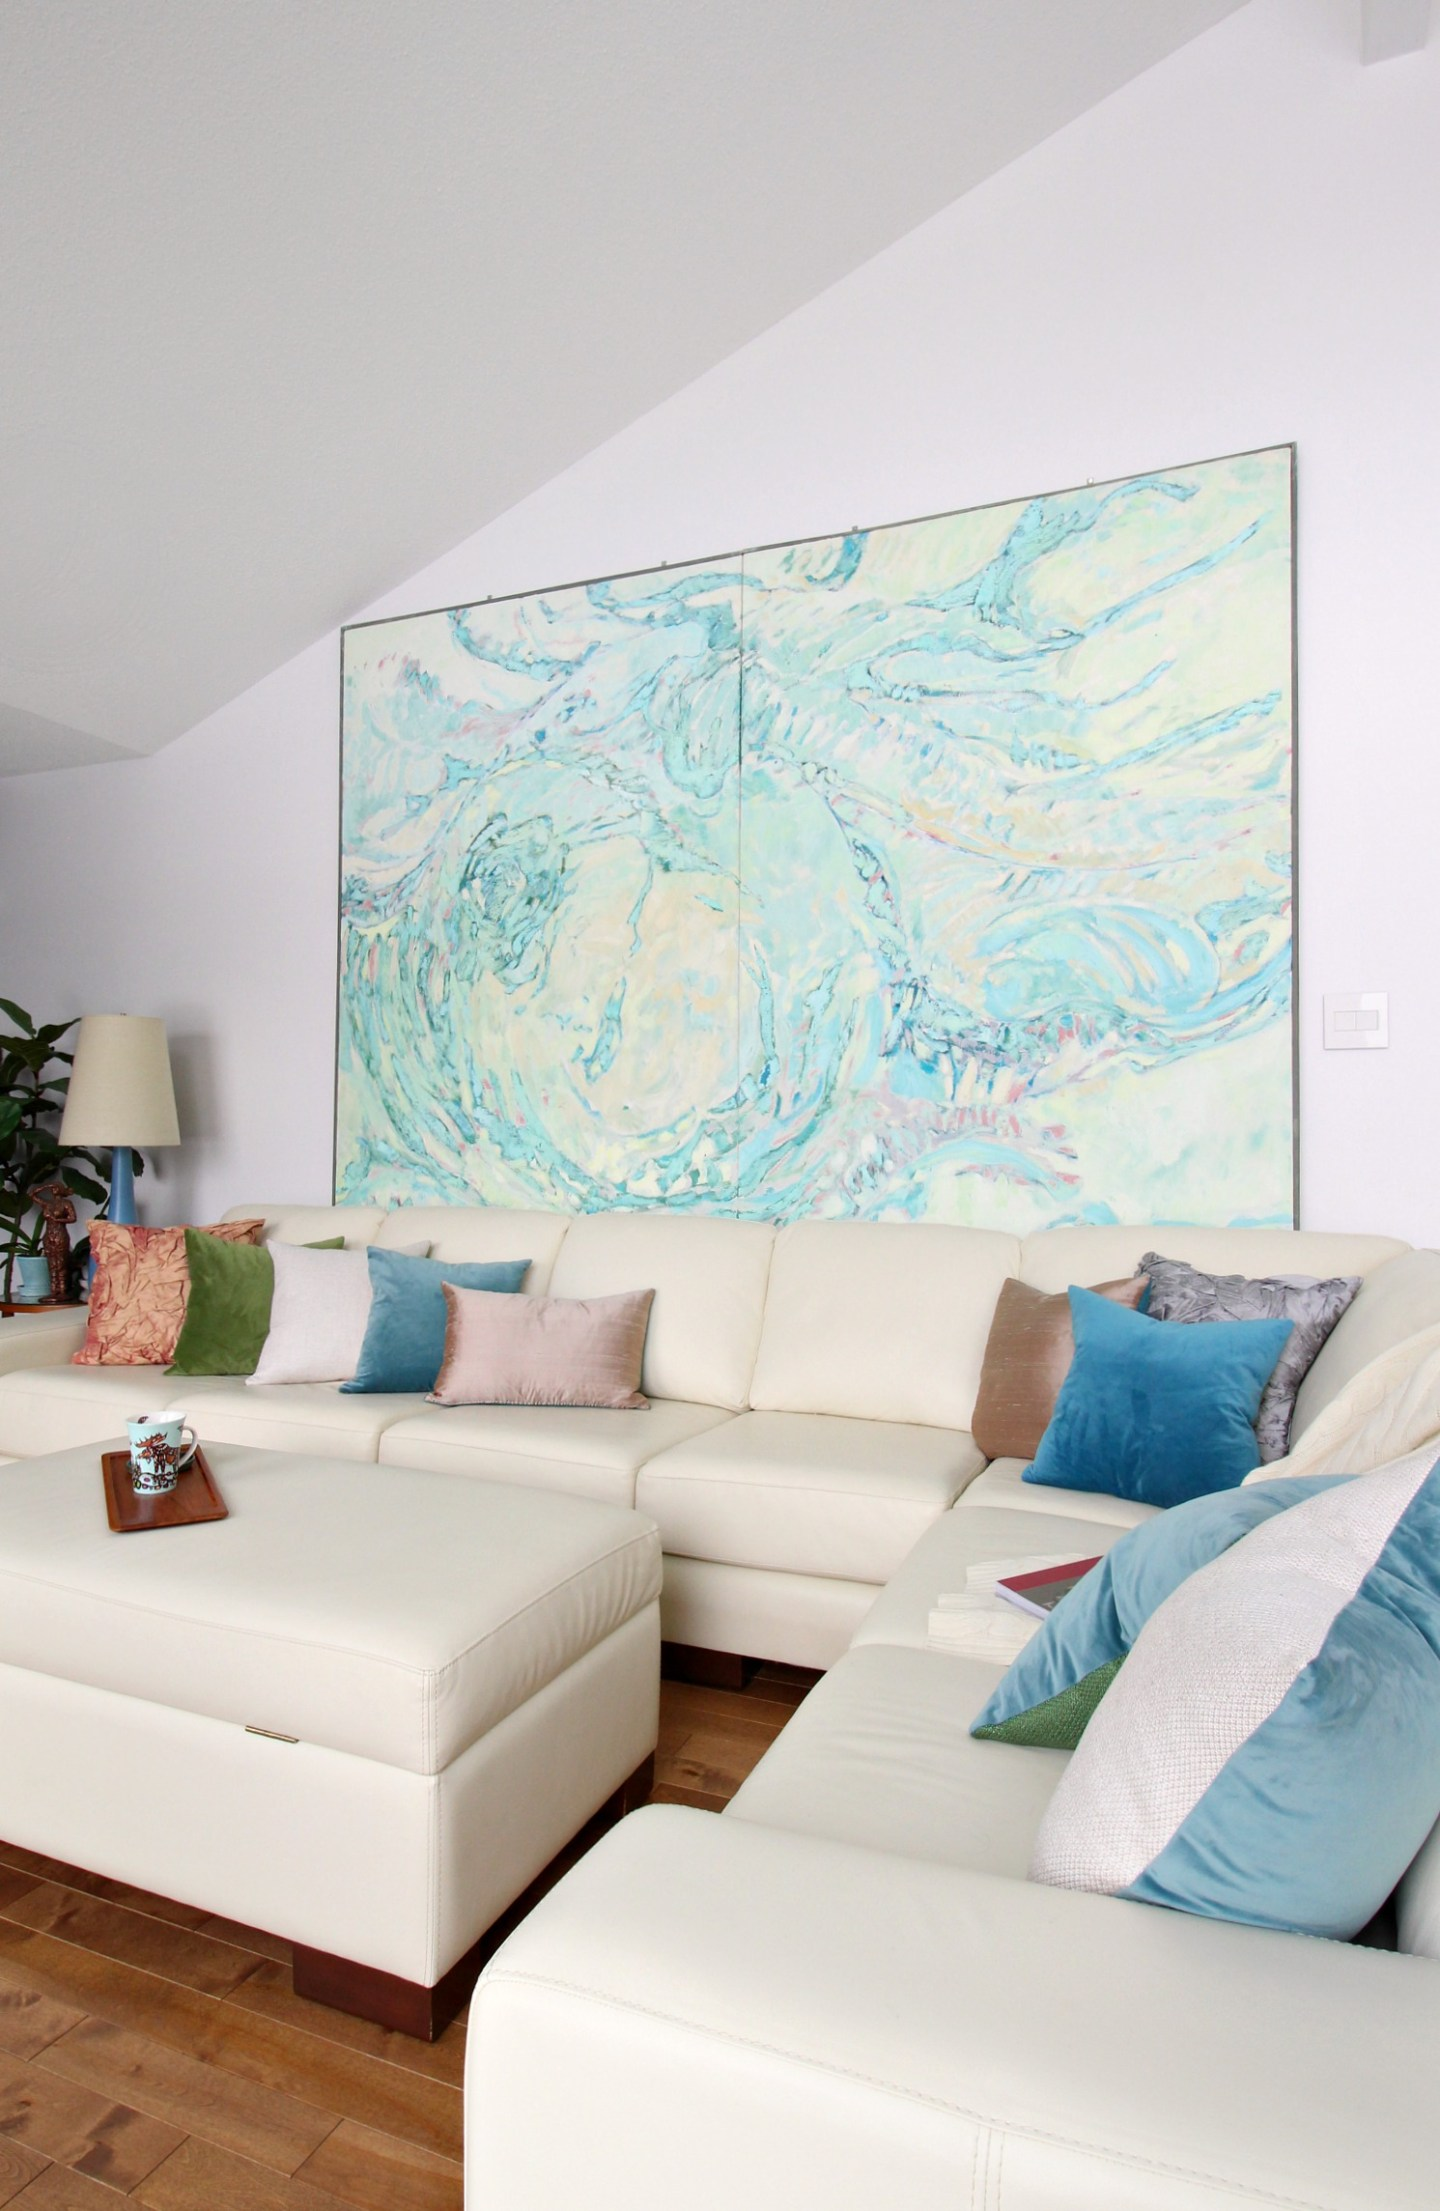 Large Coastal Painting in Turquoise and Blues